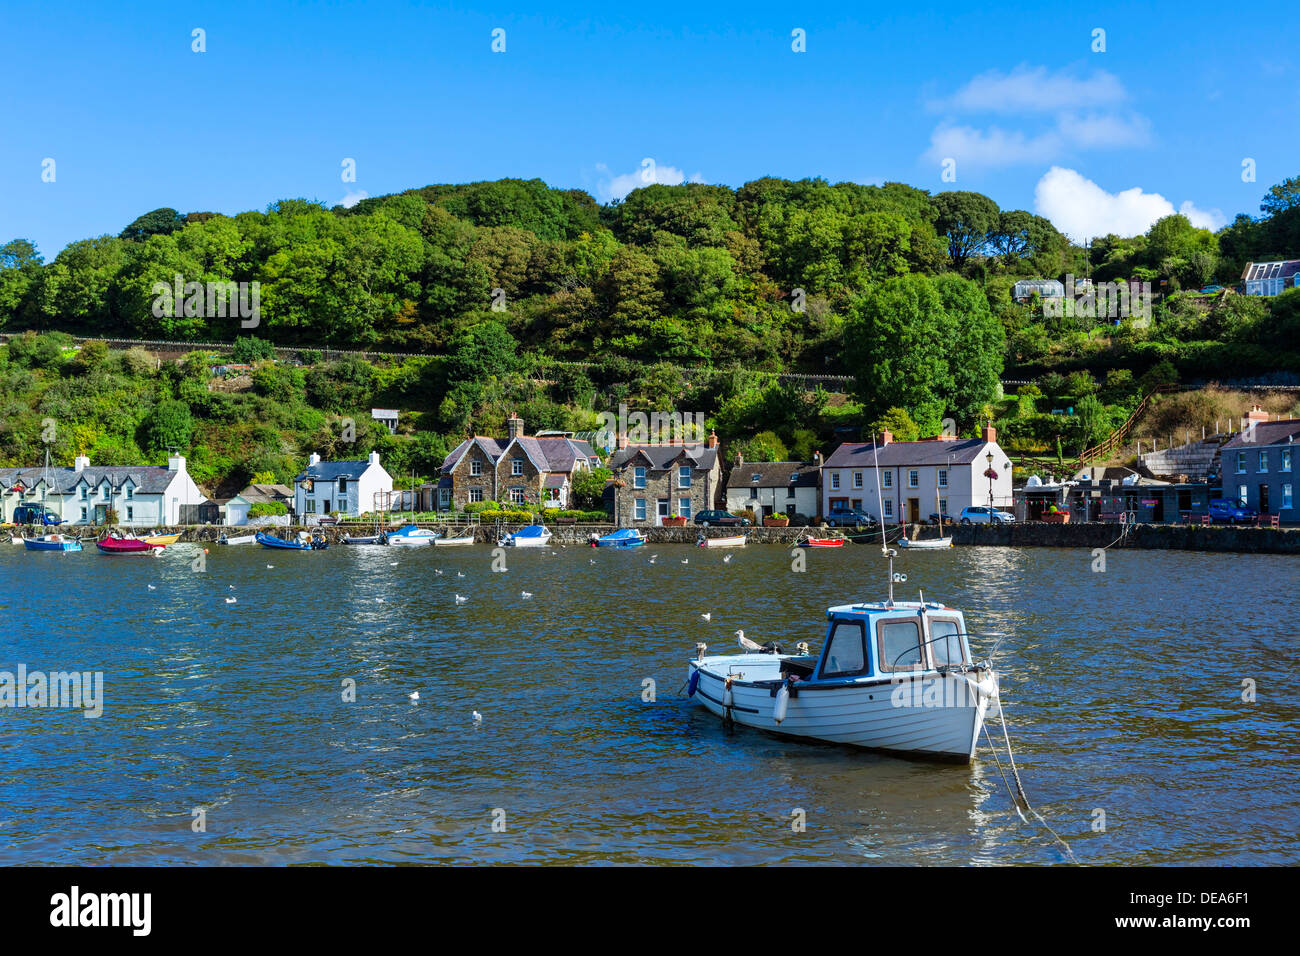 Boats In The Harbour In The Seaside Village Of Lower